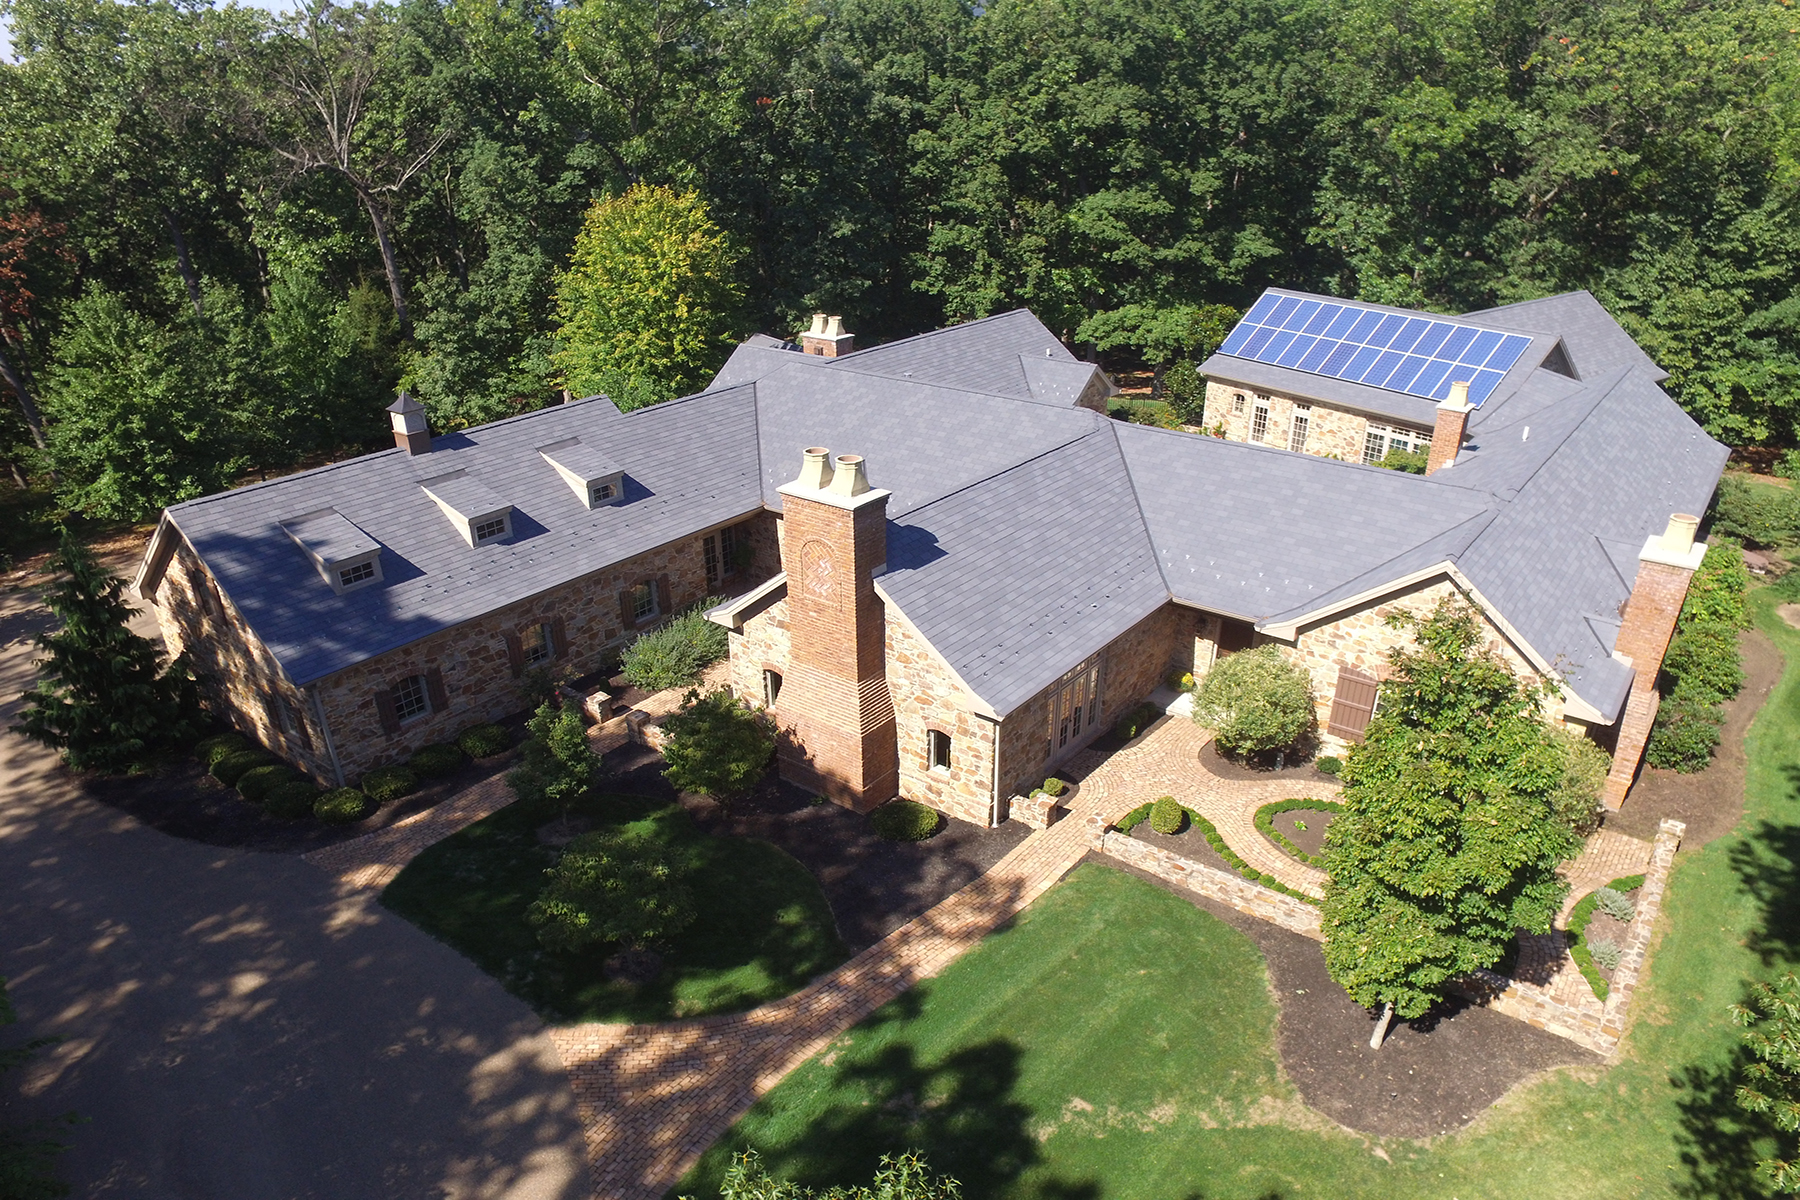 Single Family Home for Sale at 2008 Colonial Road Harrisburg, Pennsylvania 17112 United States